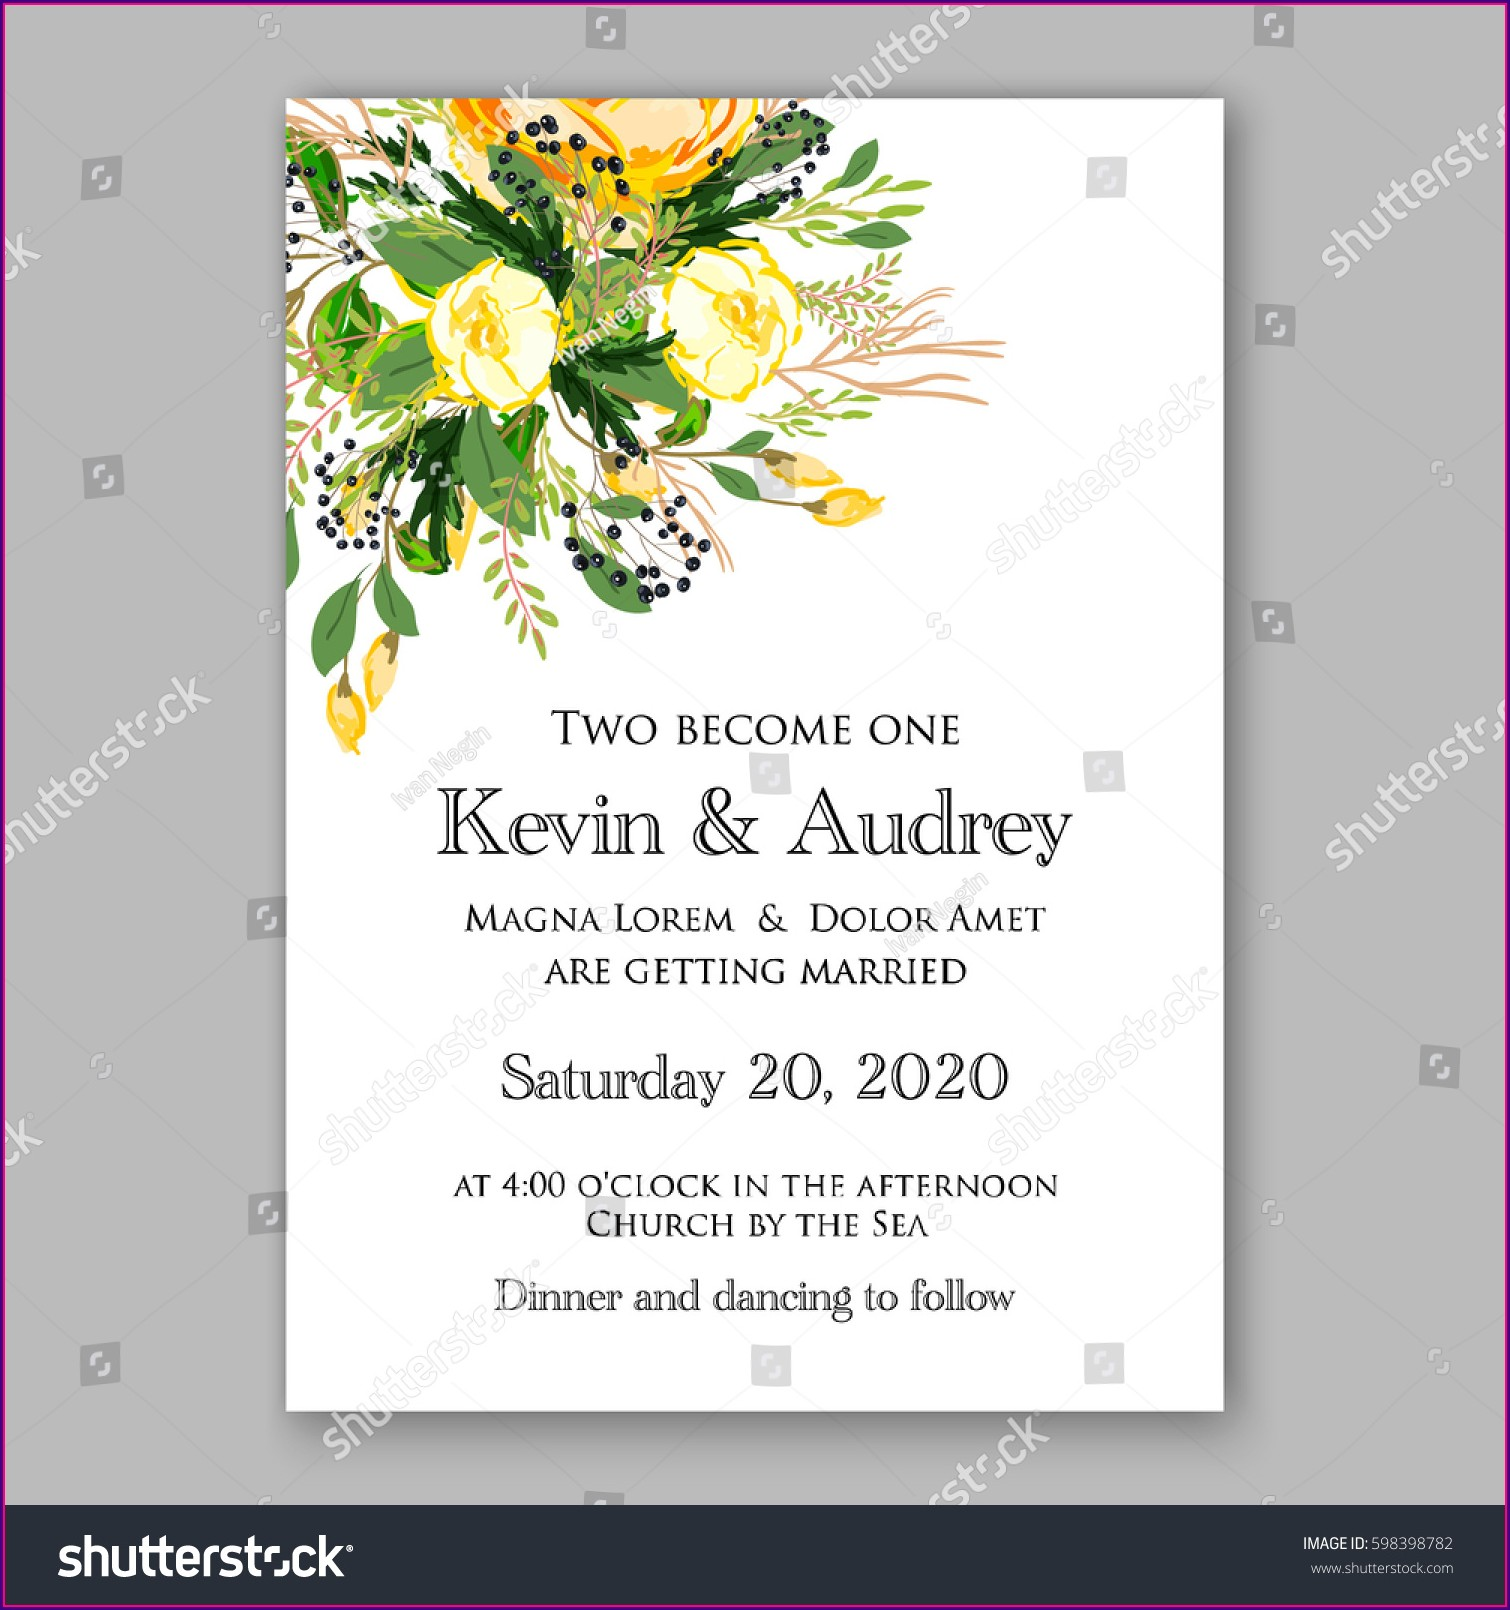 Gala Dinner Invitation Card Template